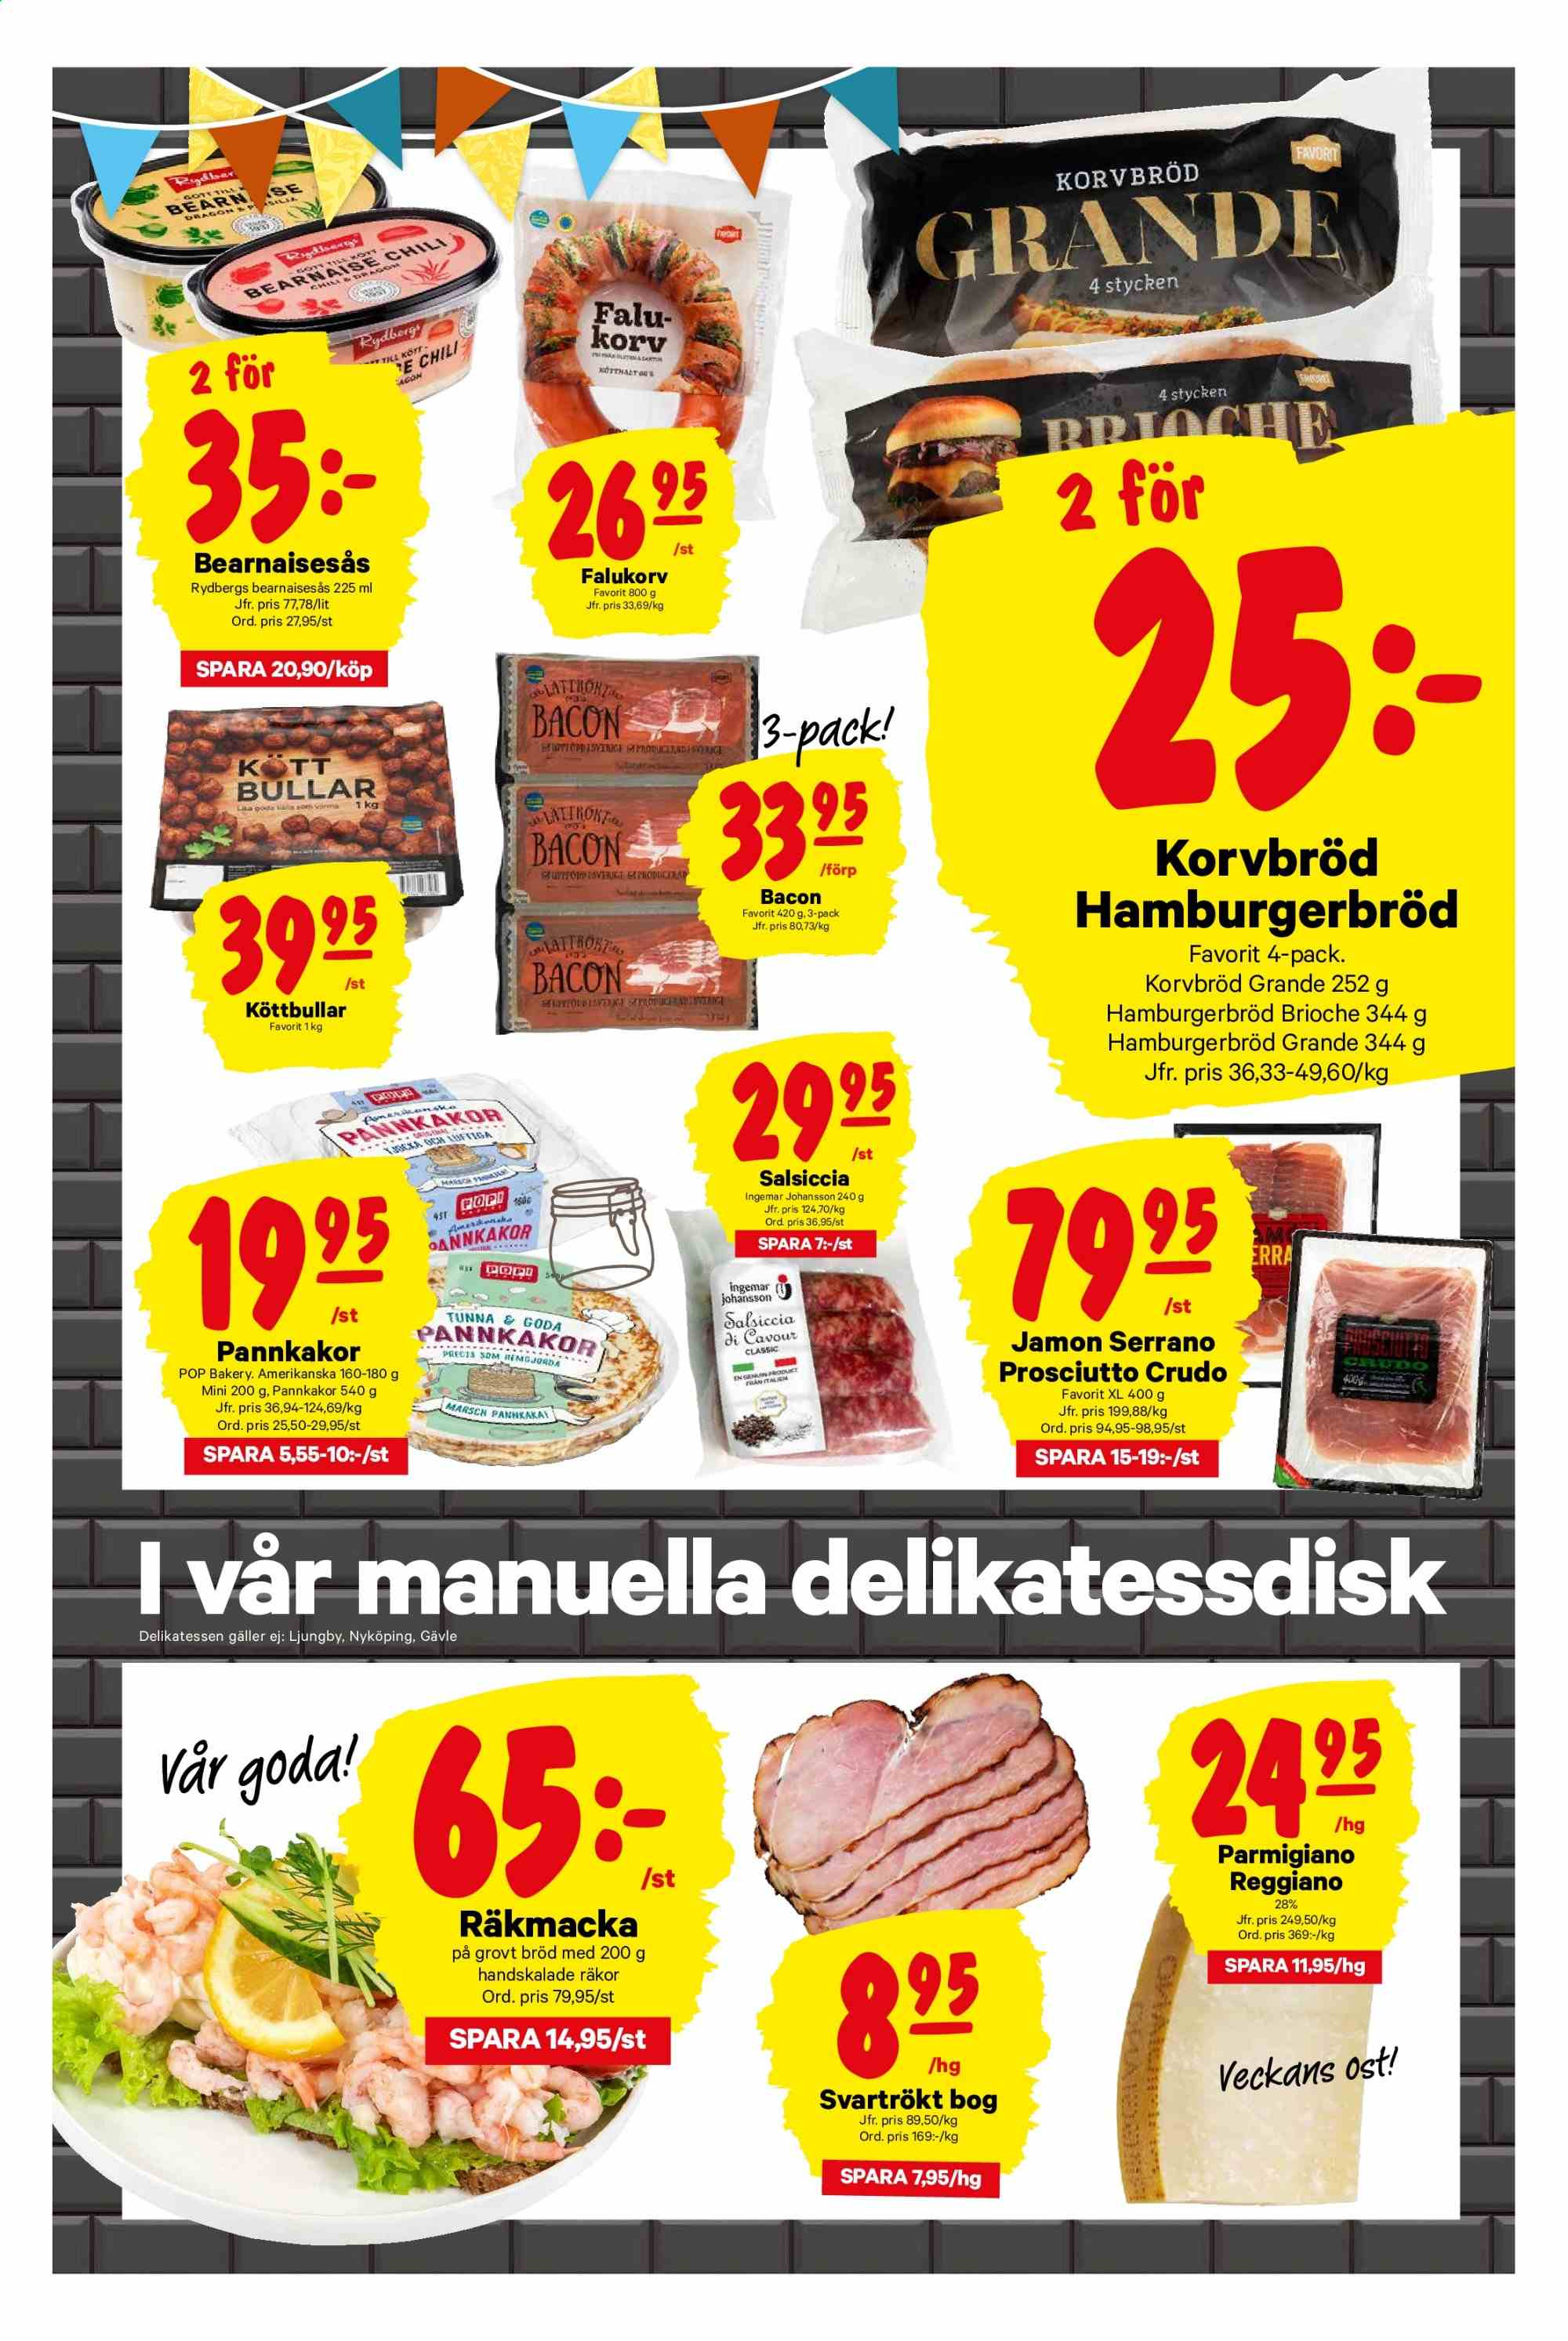 City Gross reklamblad - 1/7 2019 - 7/7 2019. Sida 3.